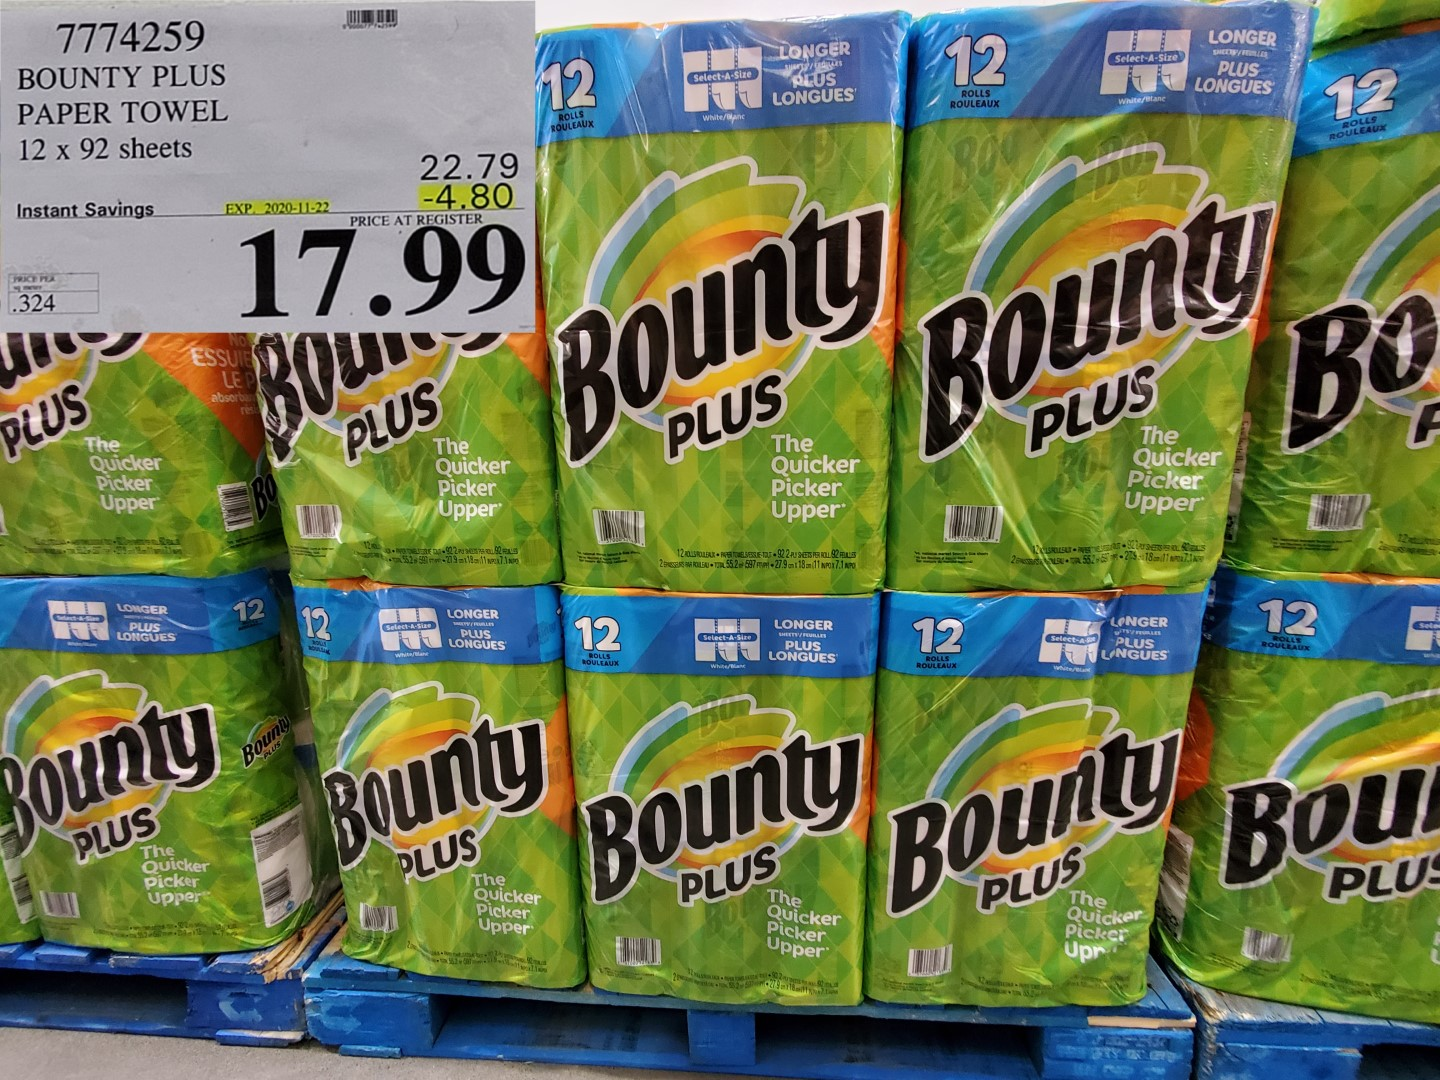 bounty plus paper towel